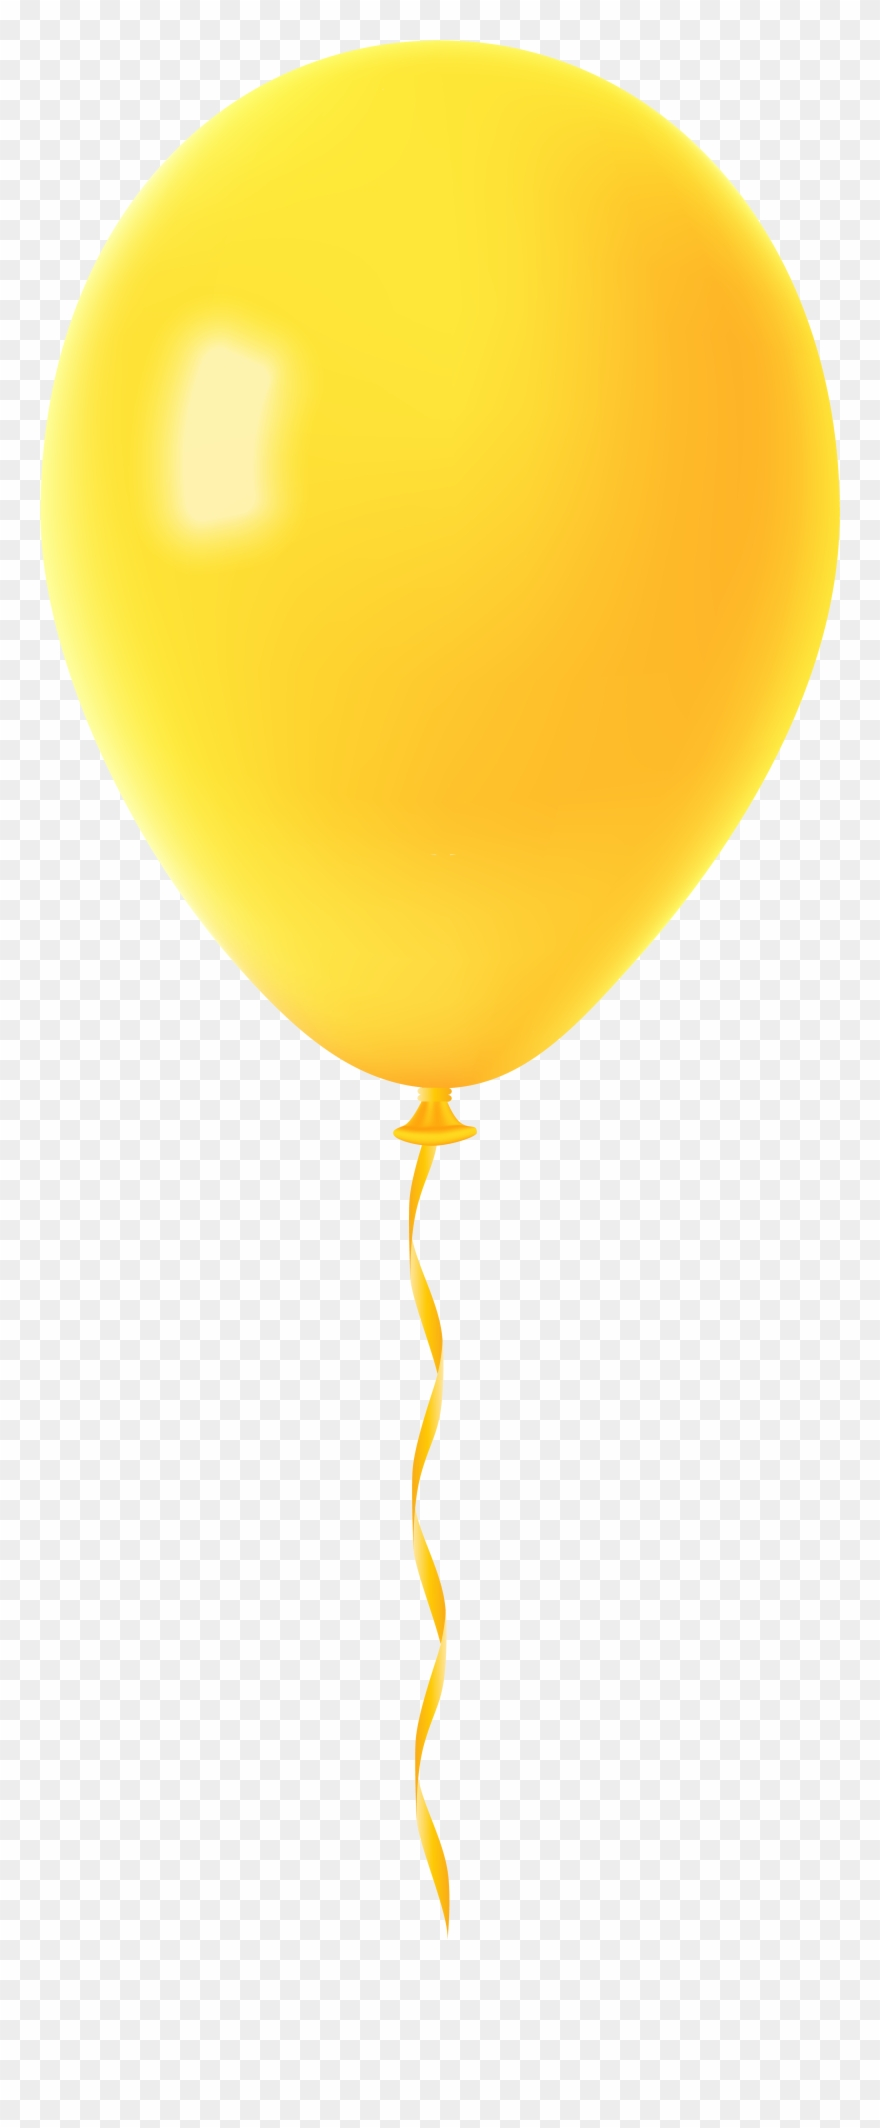 Yellow Balloons Png - Clipart Black And White Balloon Transparent Png Clip - Yellow ...